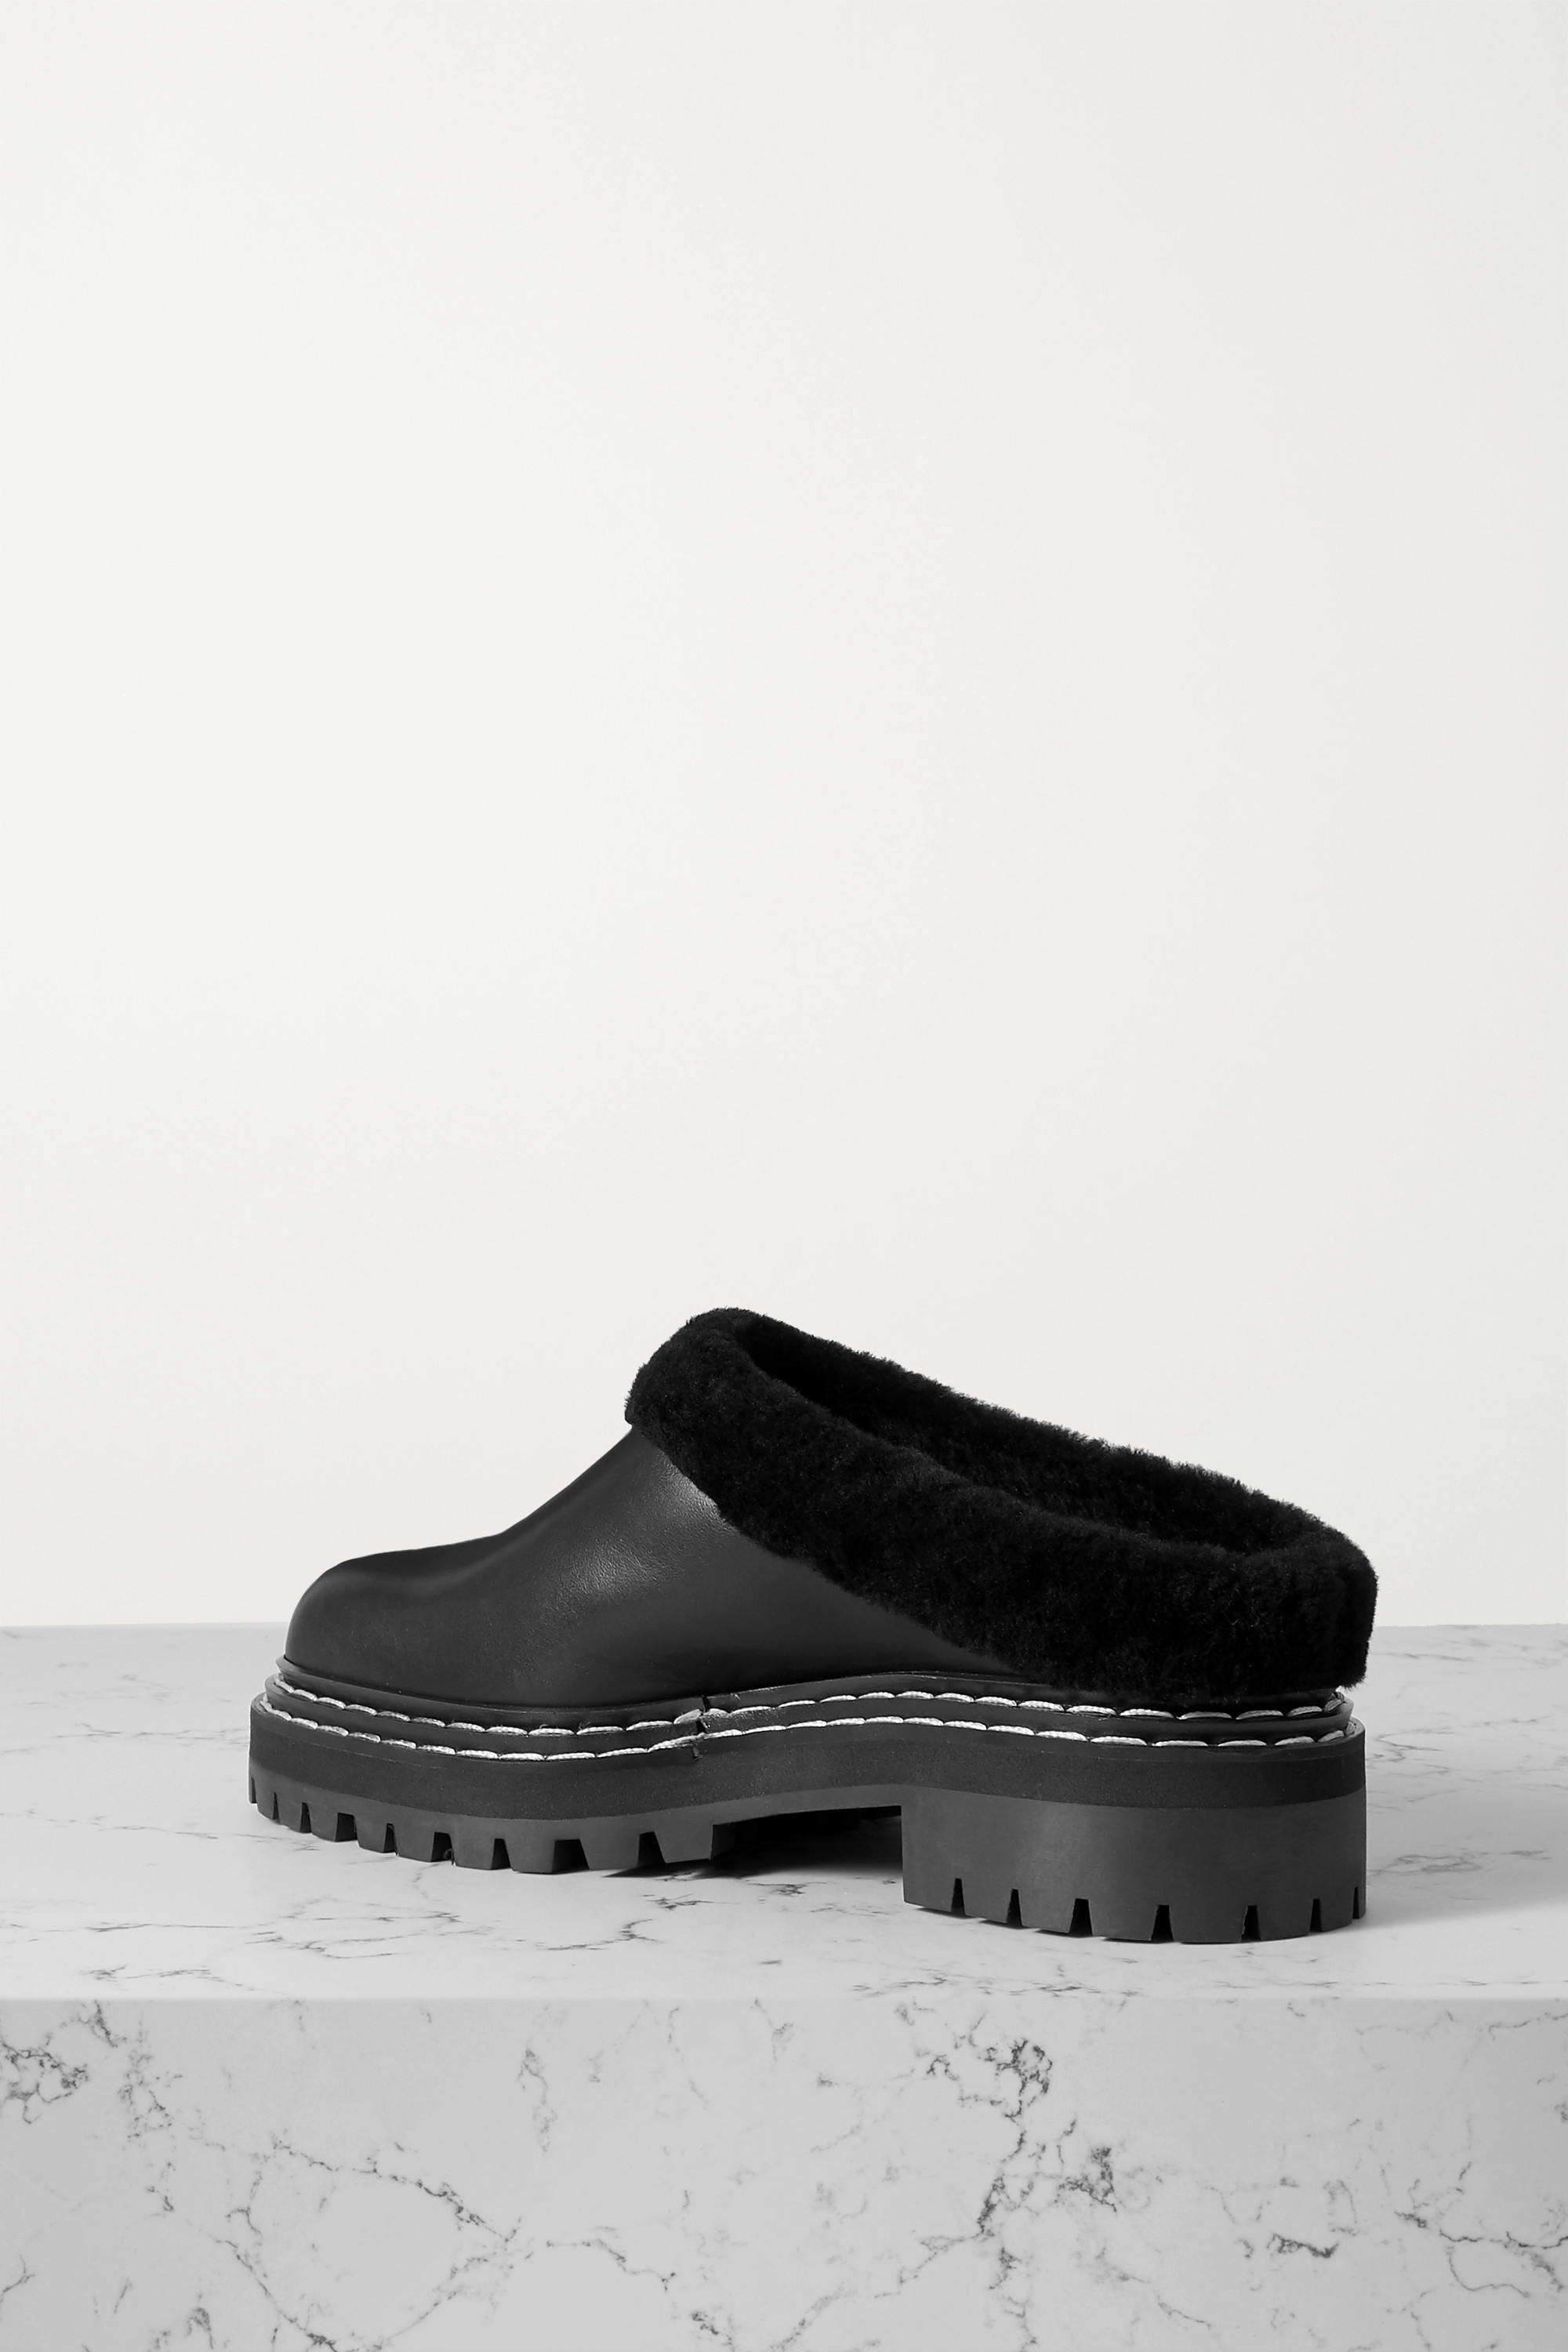 Proenza Schouler Shearling-lined leather mules